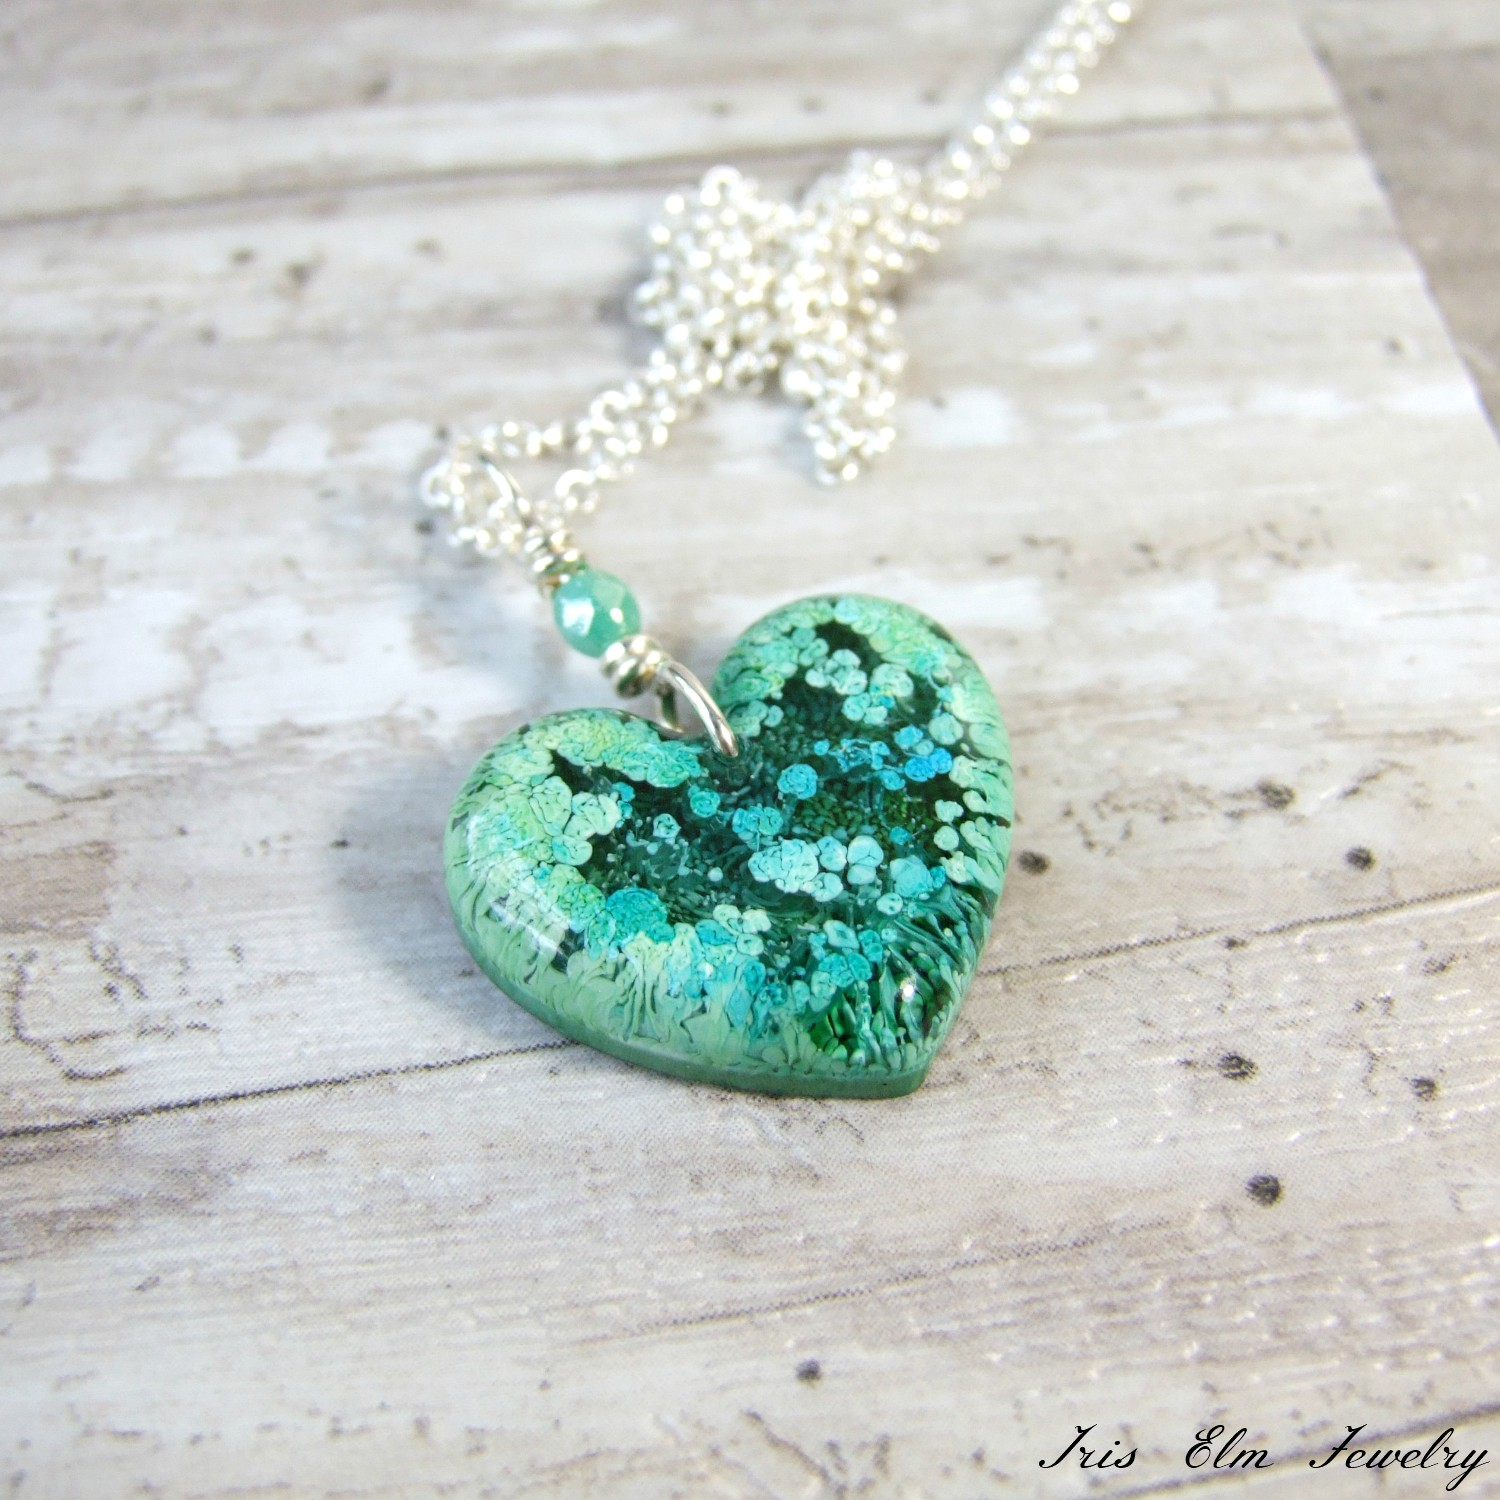 Small Blue-Green Resin Alcohol Ink Heart Pendant Necklace